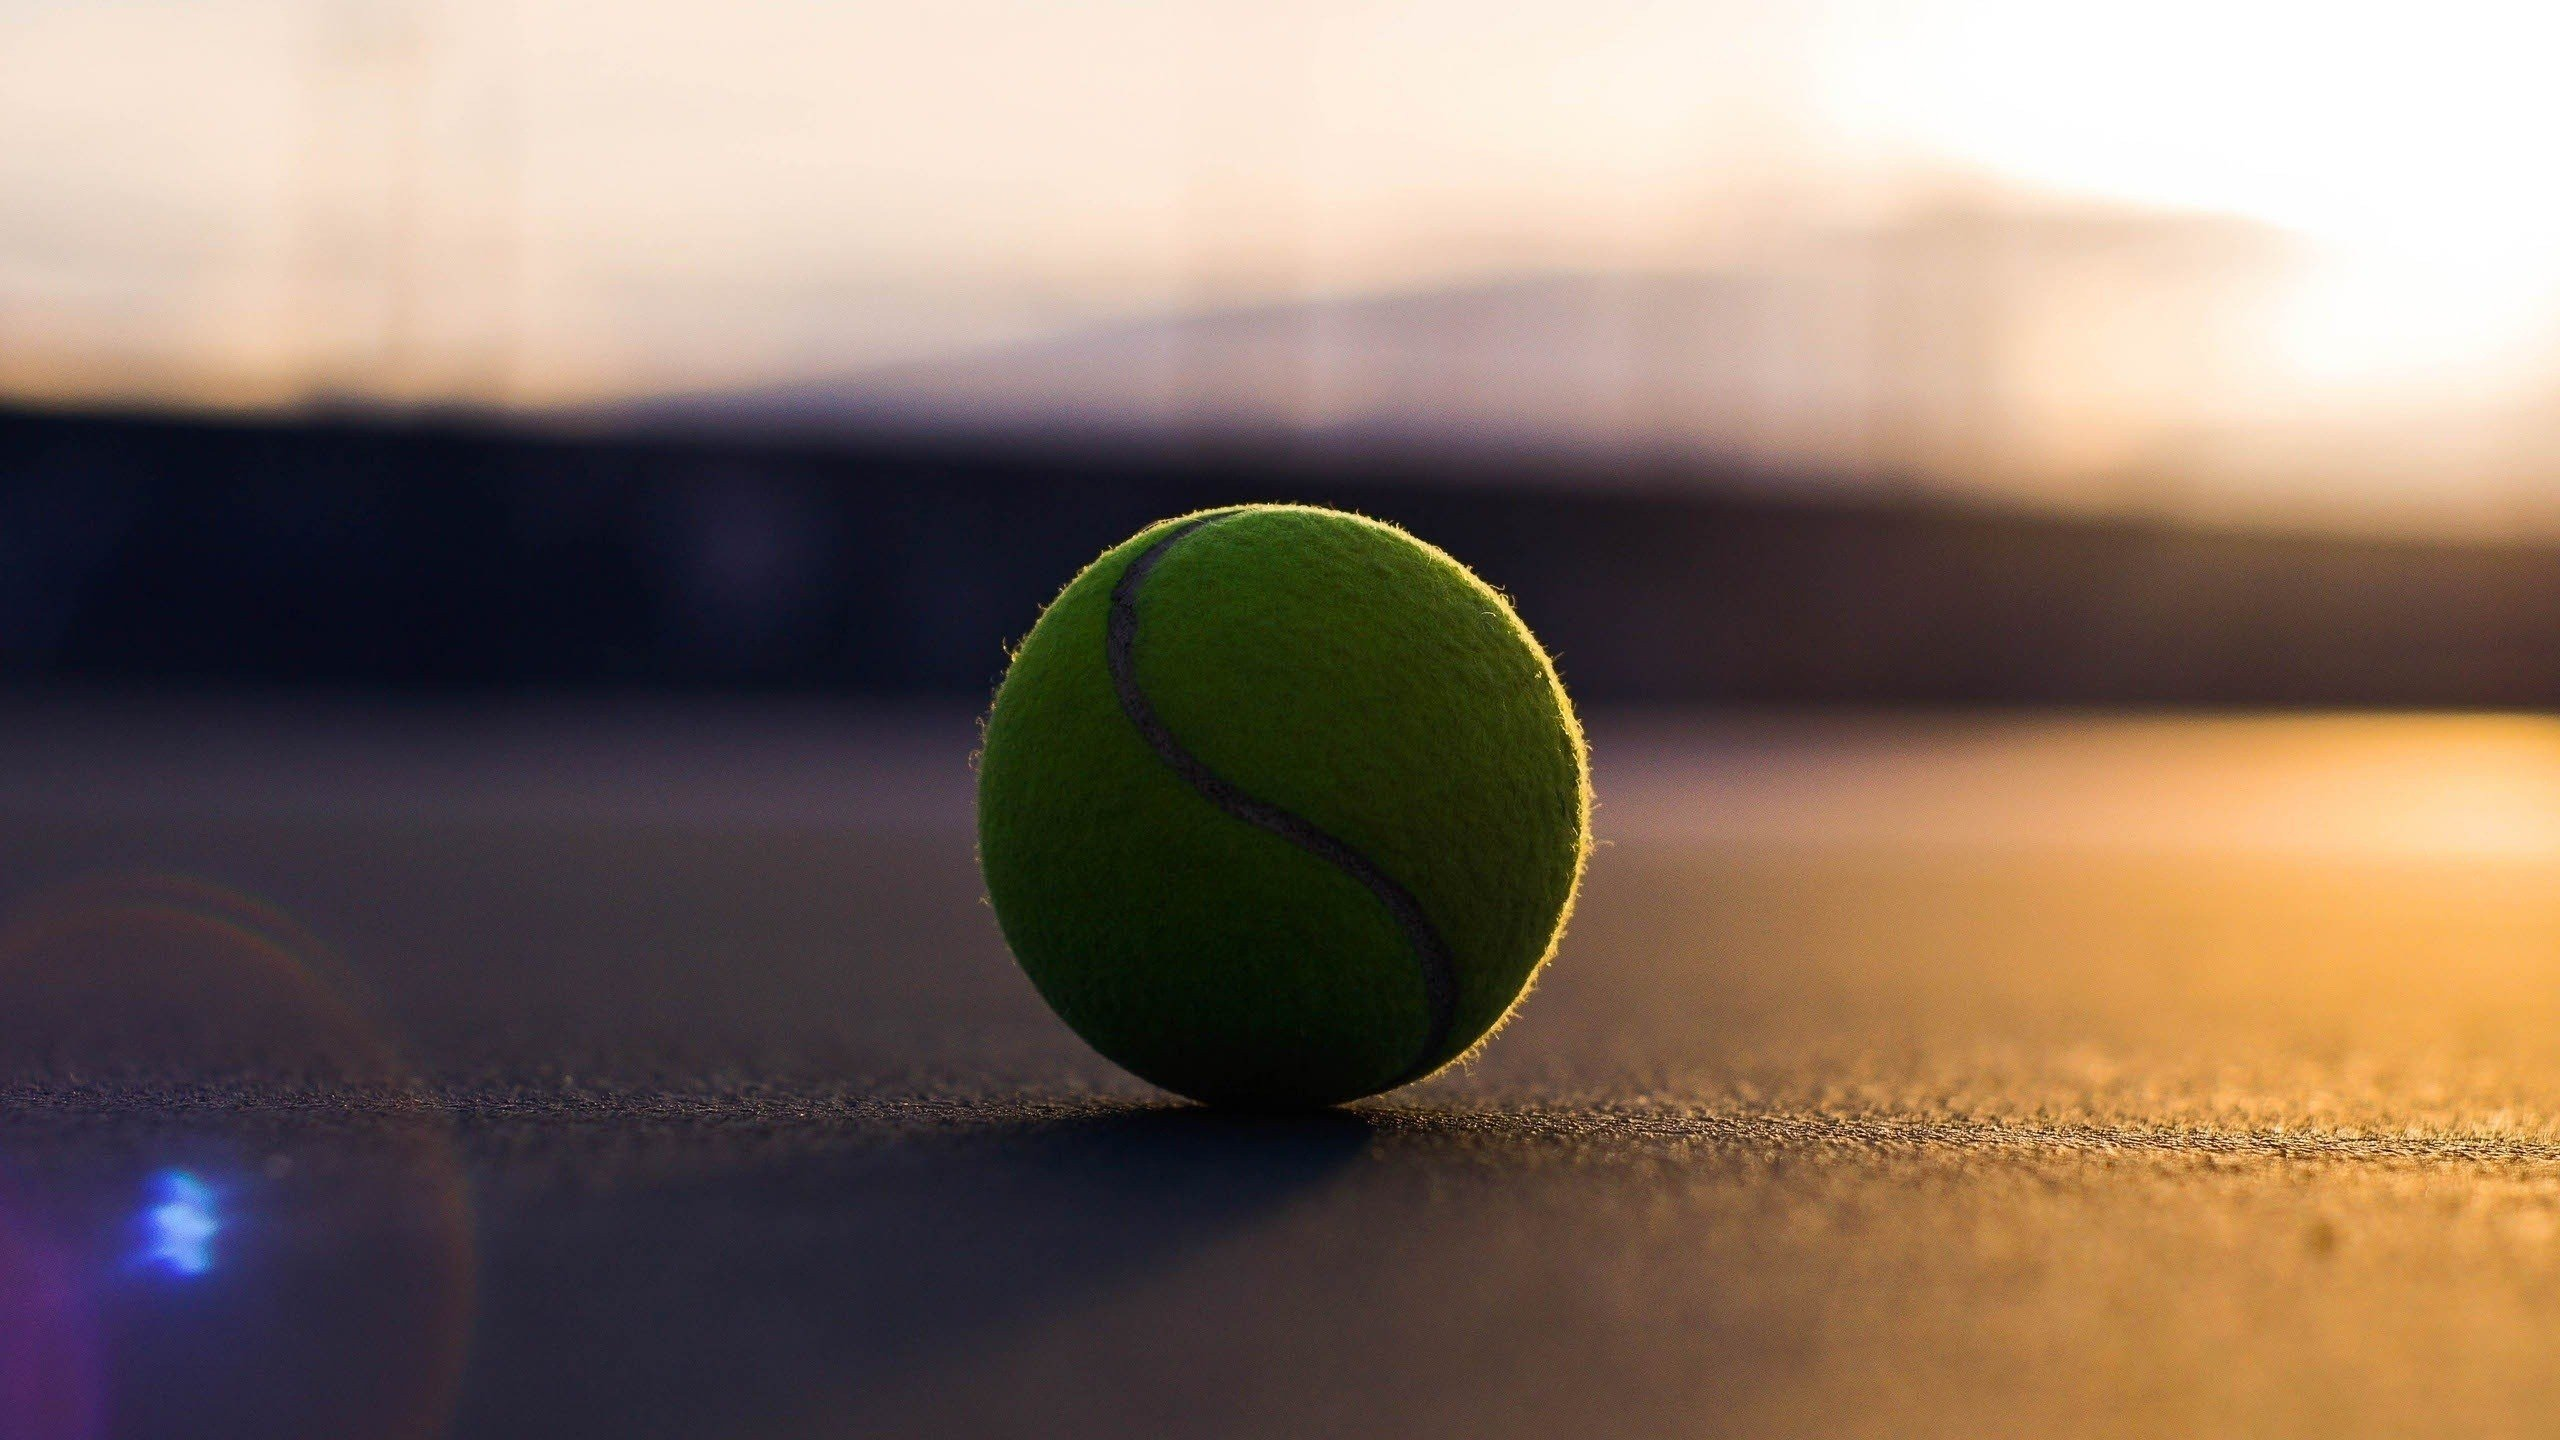 Free download Tennis background ID:19155 hd 2560x1440 for computer